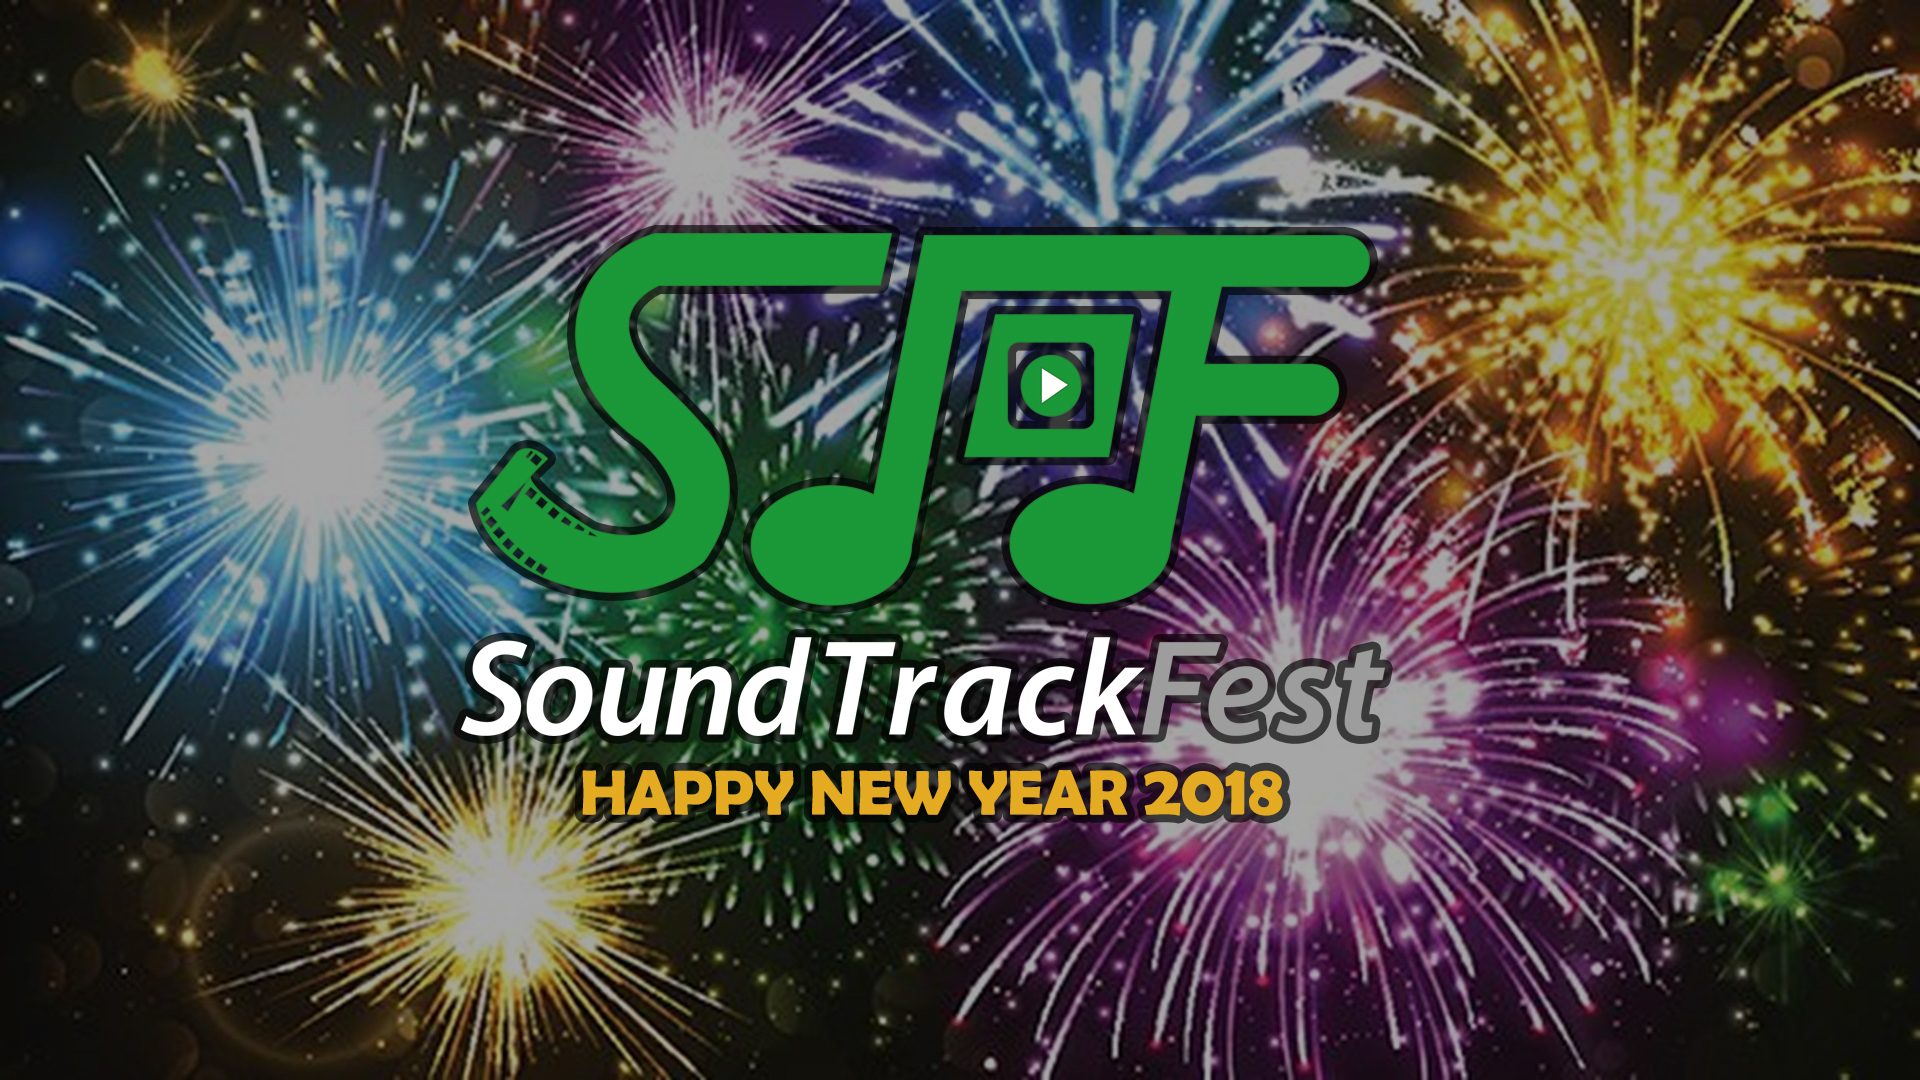 soundtrackfest wishes you a happy new year 2018